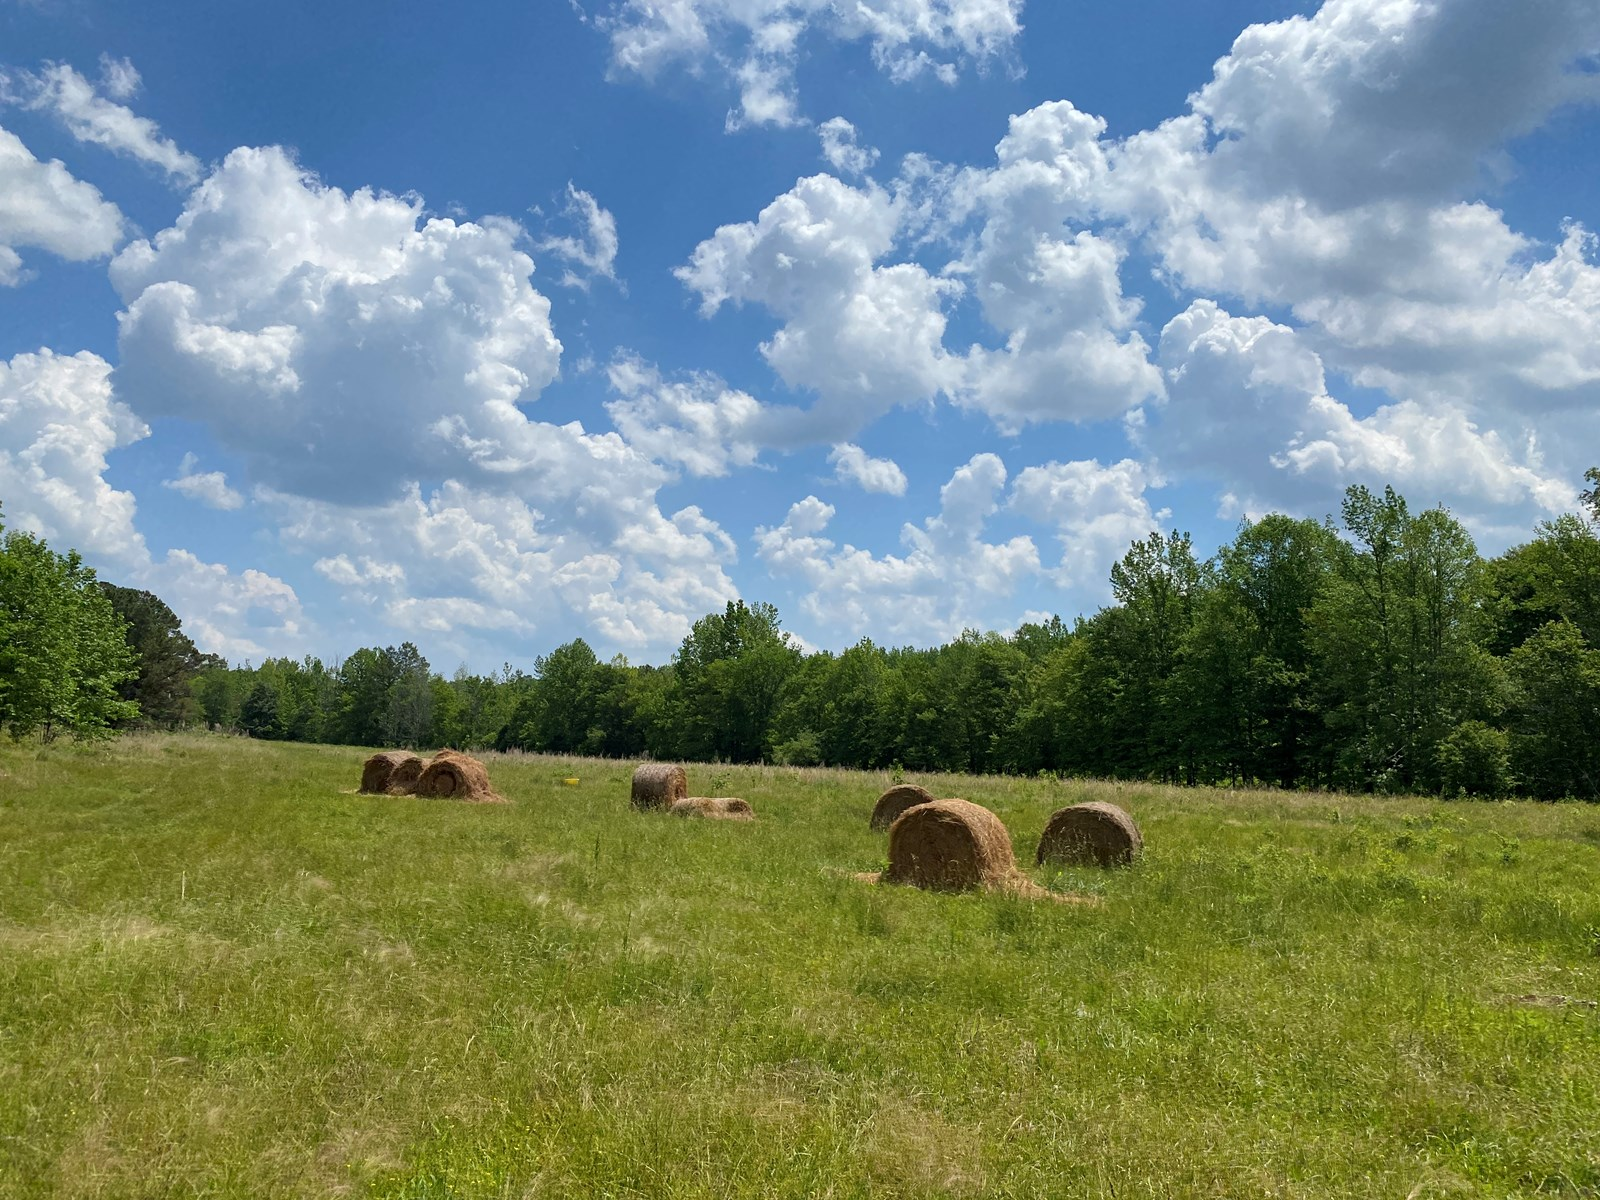 FARM FOR SALE IN TENNESSEE, 3 CREEKS, POND, GREAT HUNTING